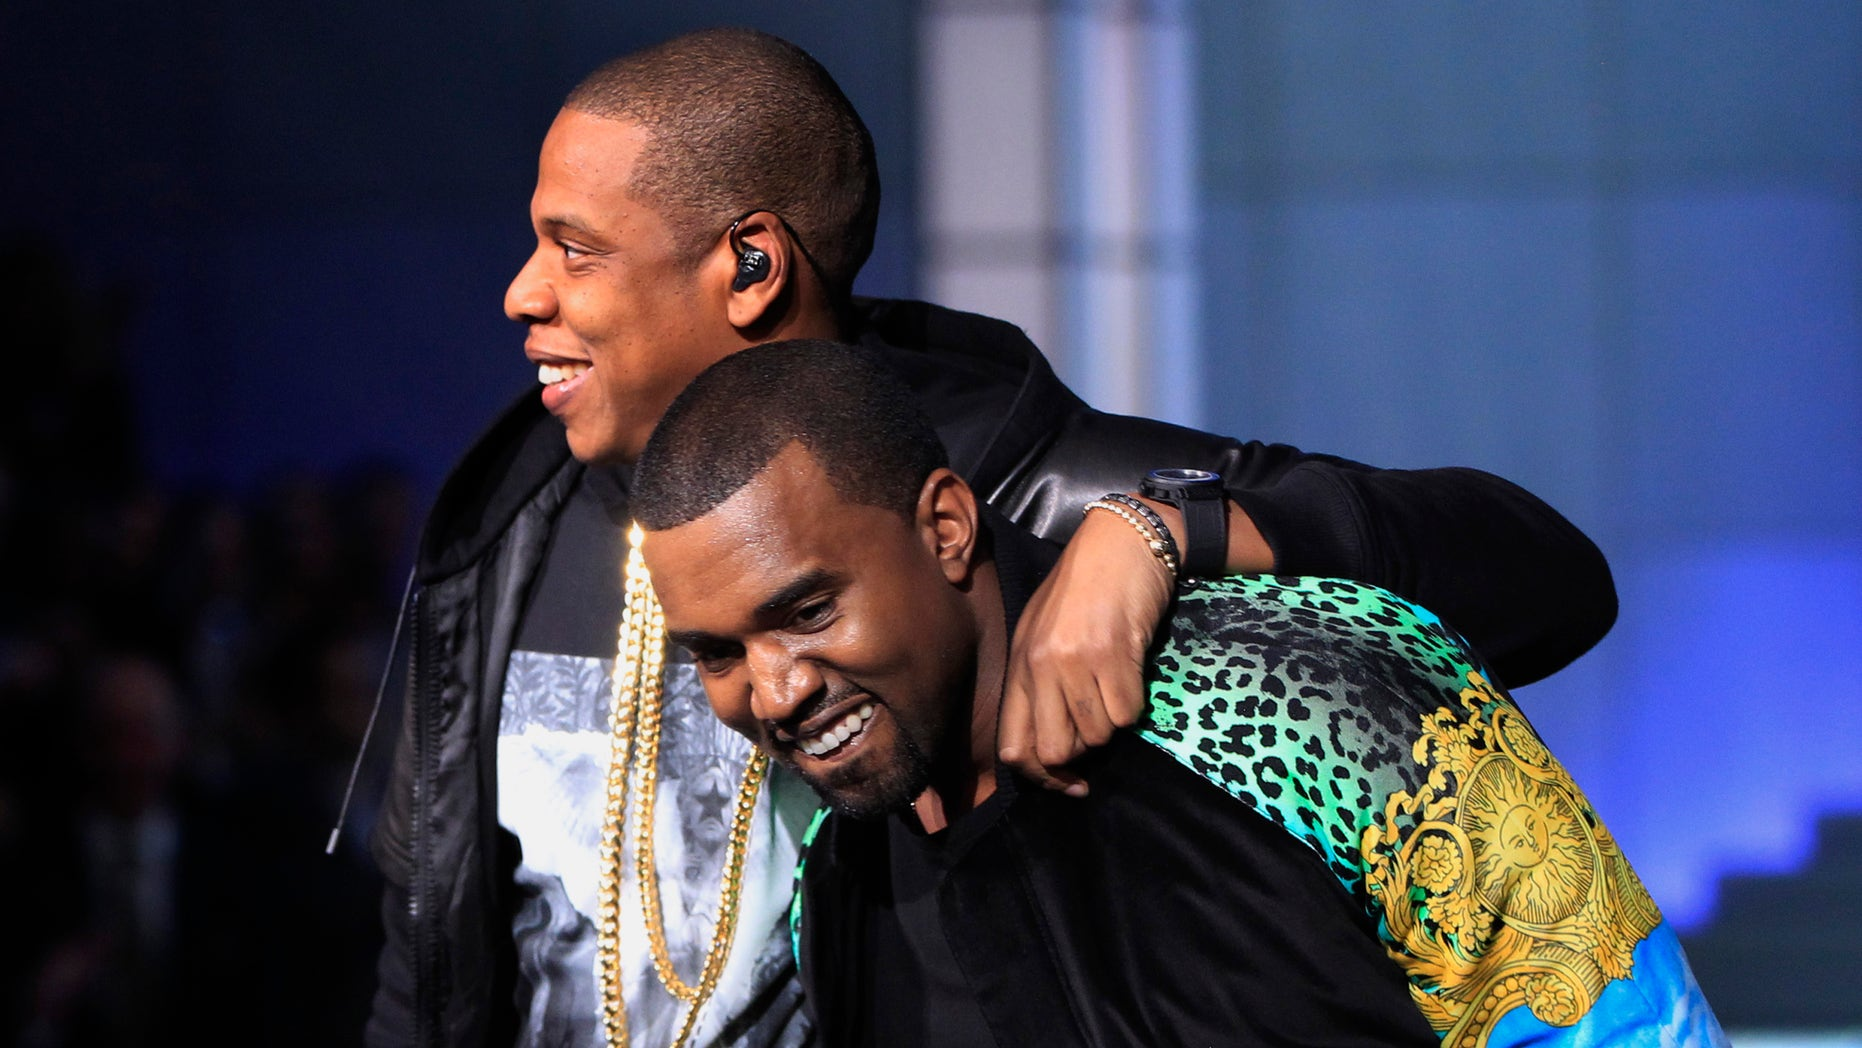 November 9, 2011. Rappers Jay-Z (L) puts his arm around Kanye West as they walk off stage after performing during the Victoria's Secret Fashion Show at the Lexington Armory in New York.